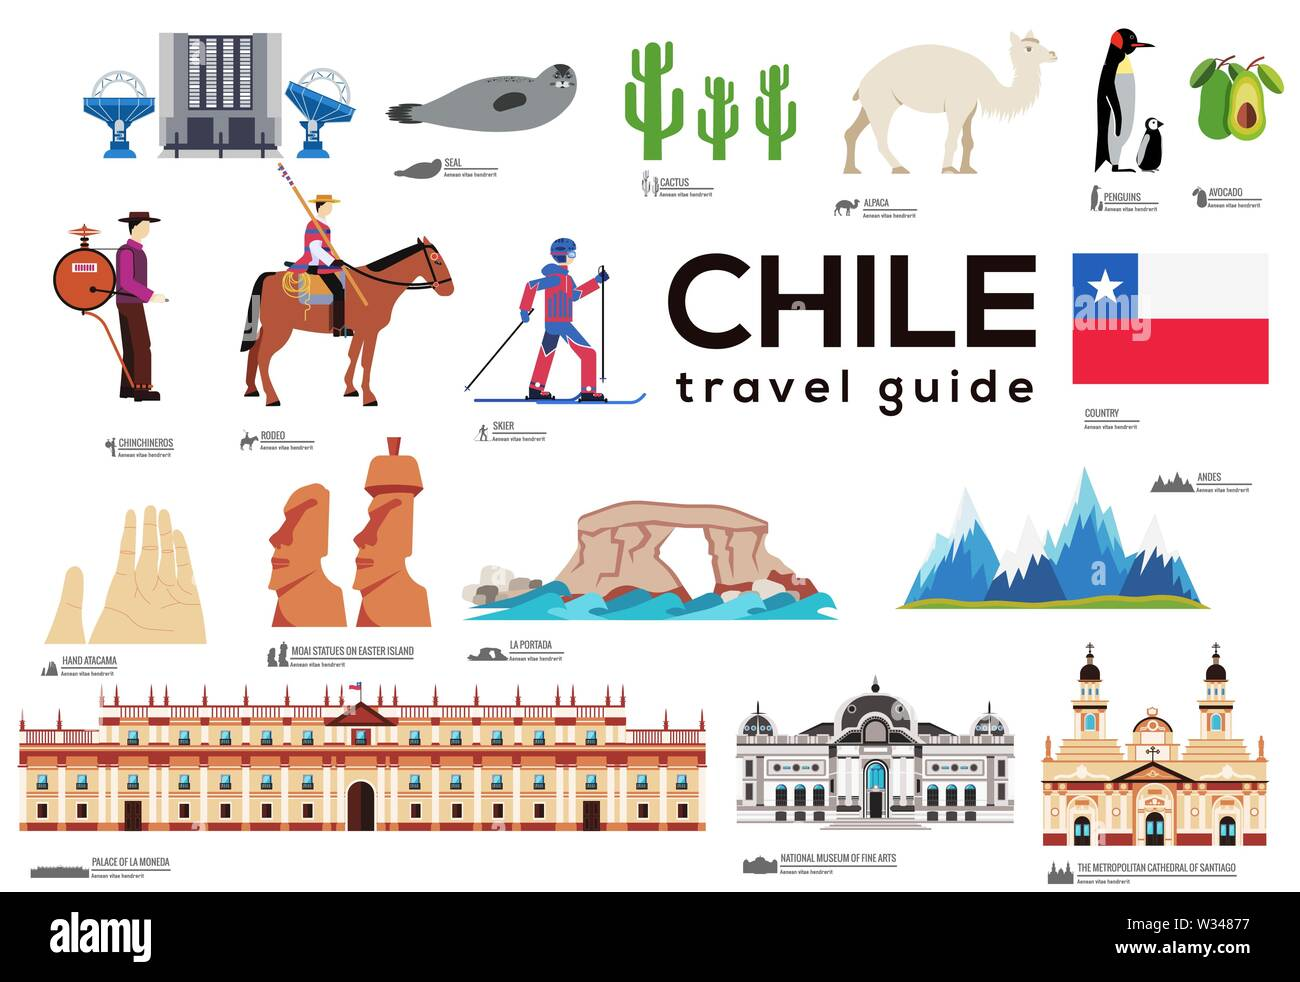 Chile travel guide template. Set of chilean landmarks, cuisine, traditions flat icons, pictograms on white. Sightseeing attractions and cultural symbo - Stock Image